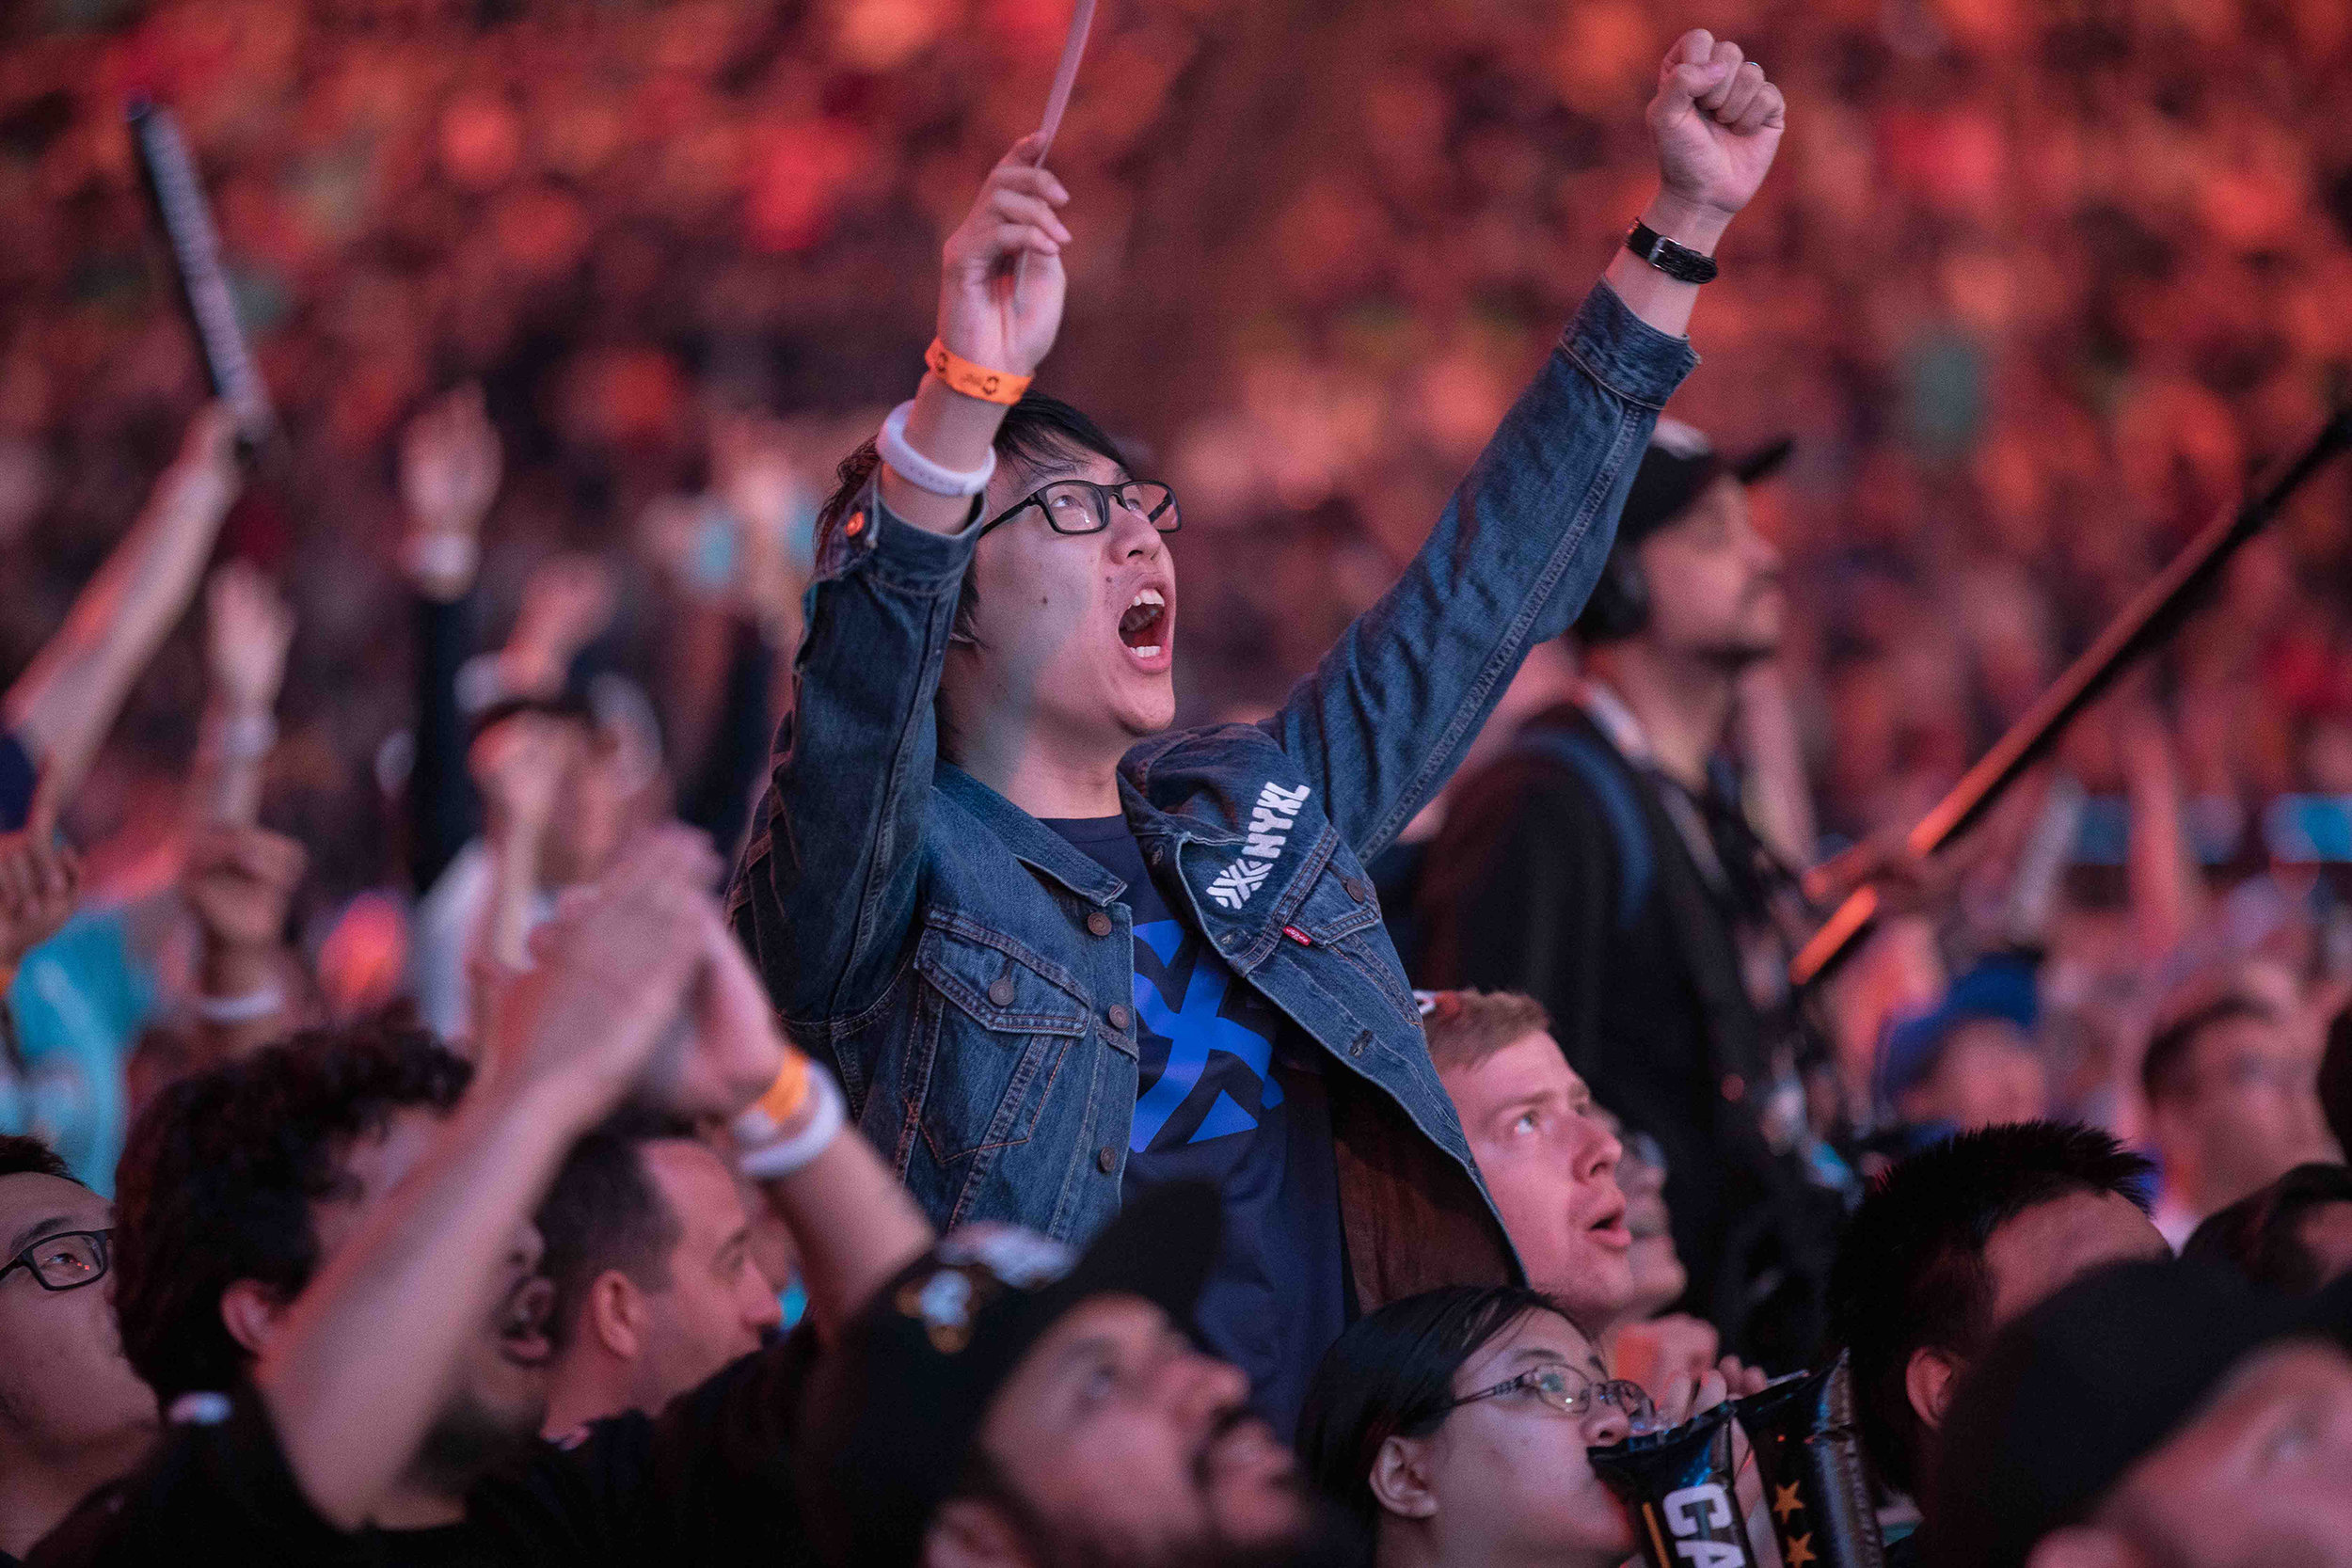 Overwatch League Grand Finals, fan leting his voice heard during the London Spitfire vs Philadelphia Fusion championship at Barclays Center on July 27, 2018 in Brooklyn, New York.  Photo by Hannah Smith / ESPAT Media